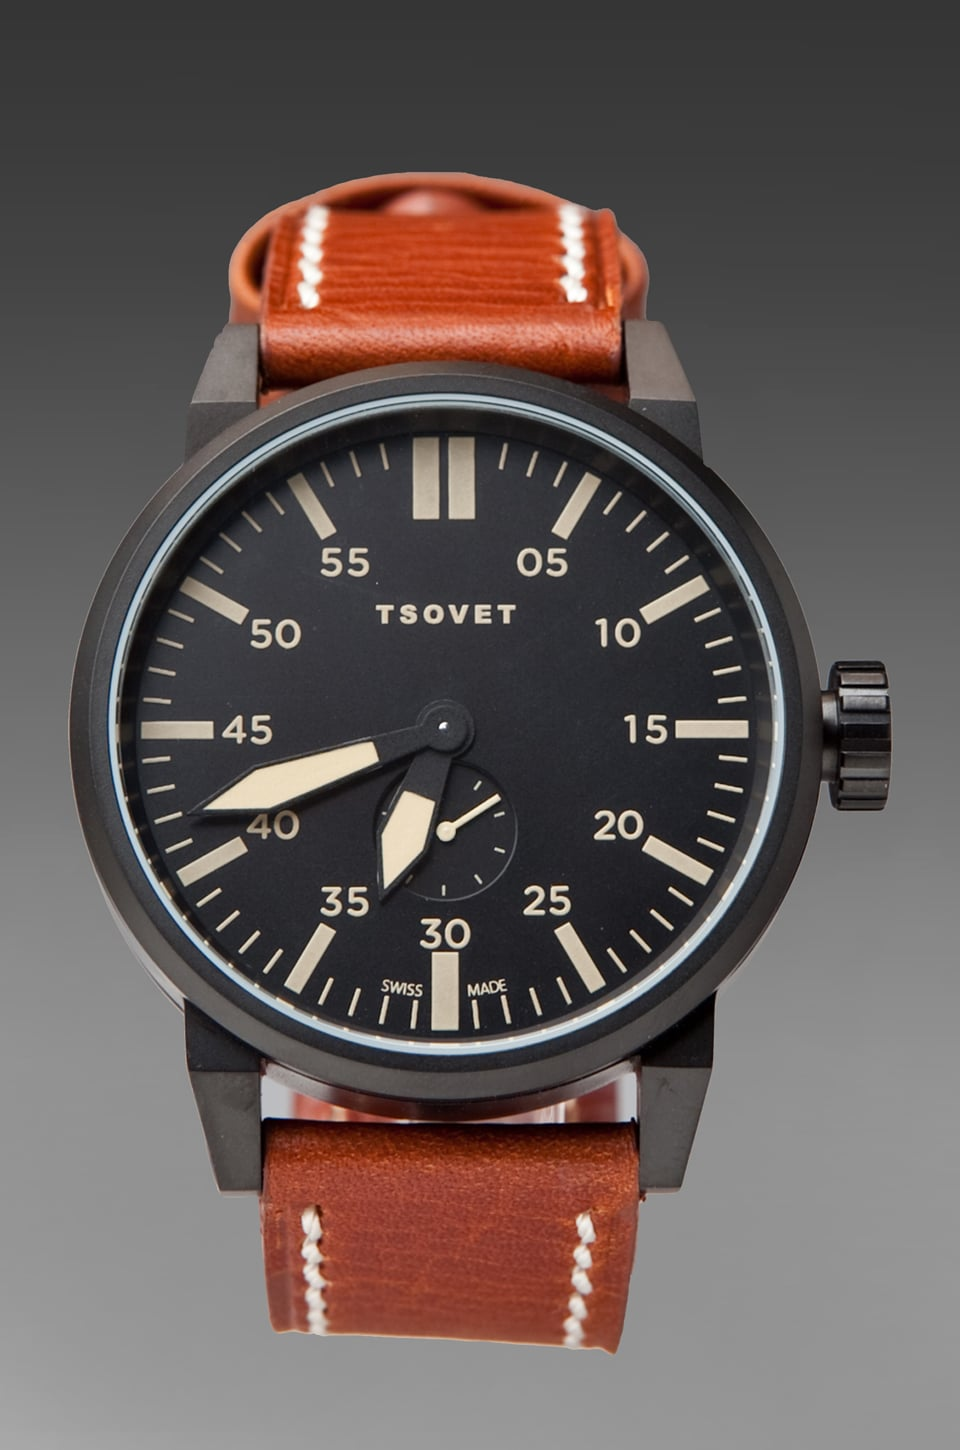 Tsovet SVT-FW44 in Black/Brown